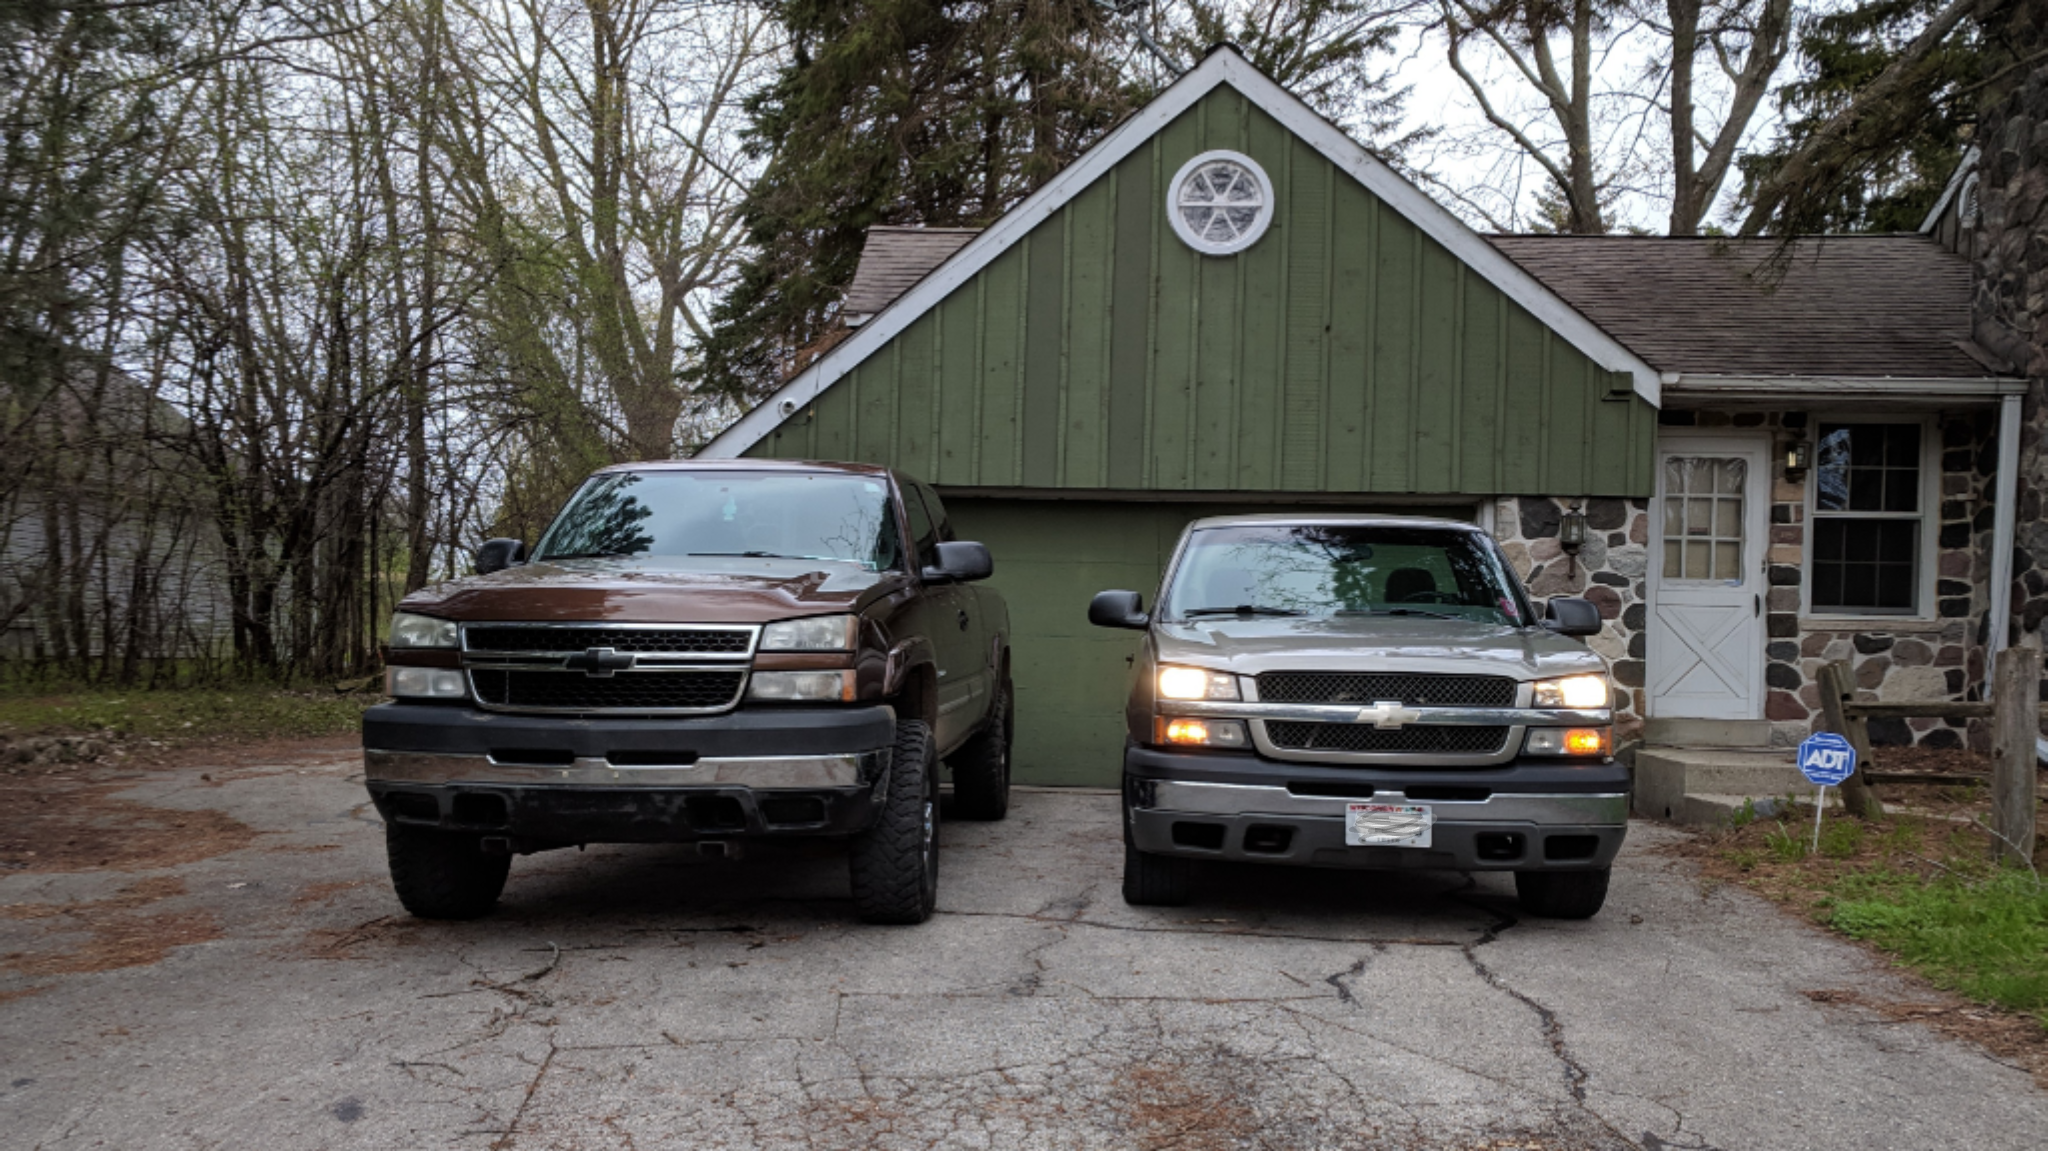 Click image for larger version  Name:trucks.png Views:11 Size:3.59 MB ID:104958